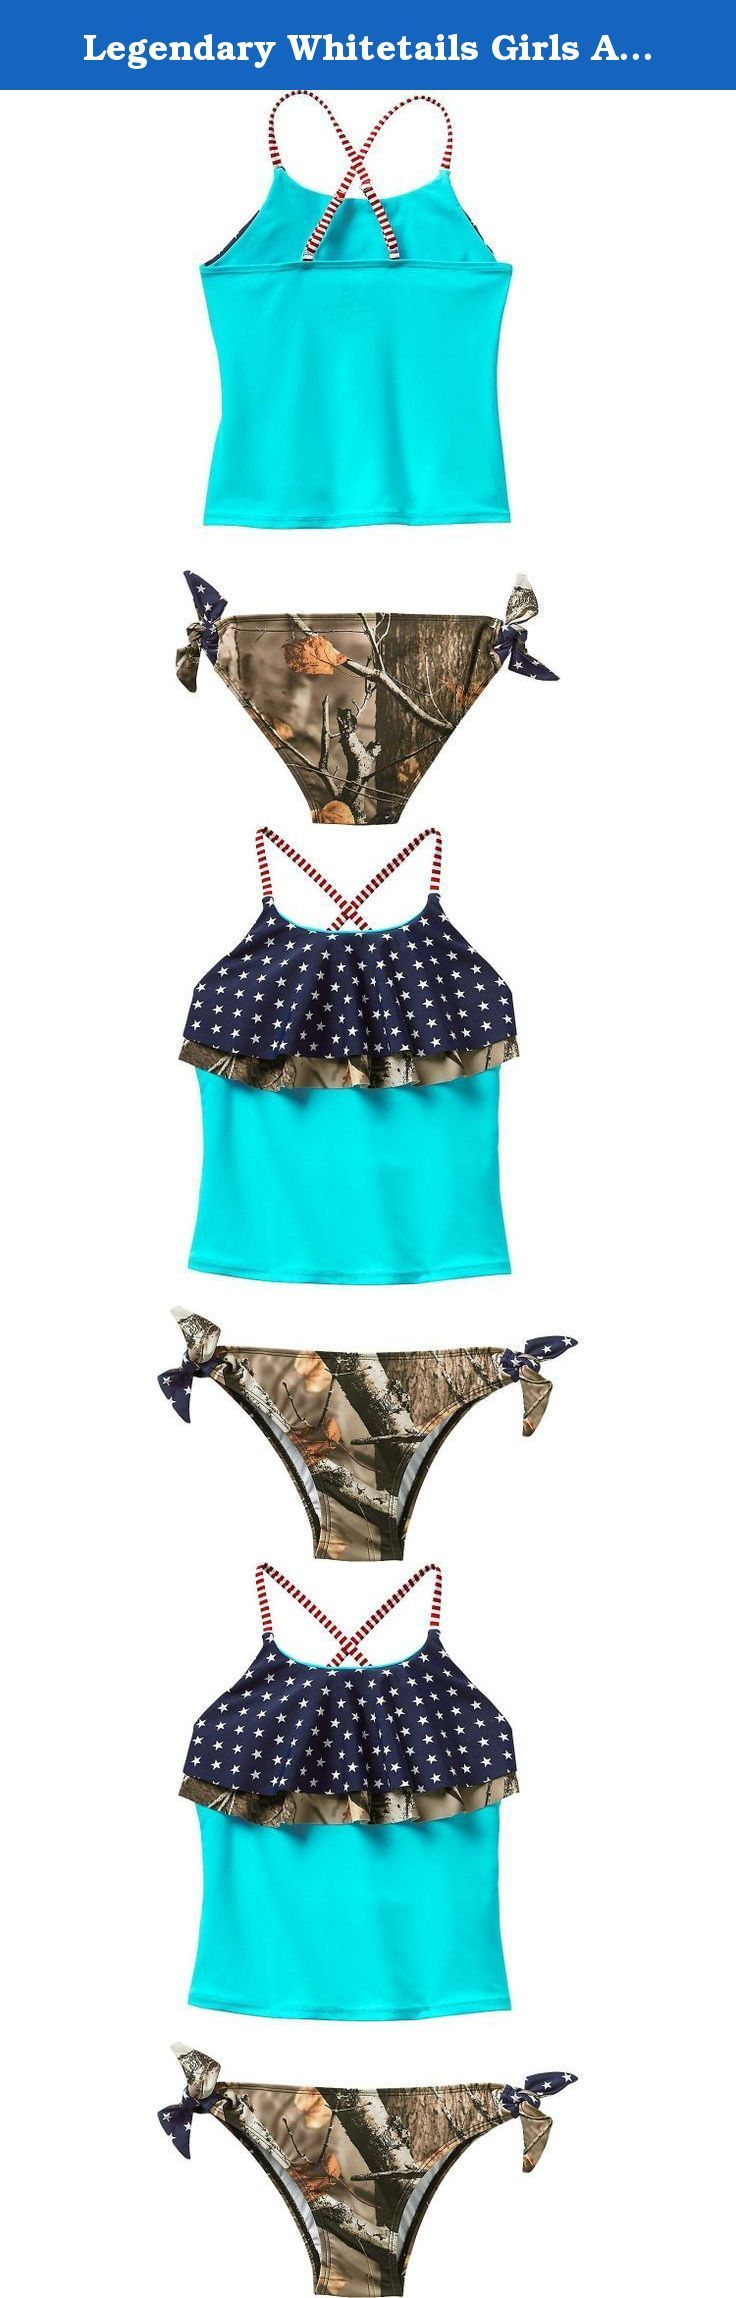 Legendary Whitetails Girls Americana Swimsuit Vintage Stars Small. Let your little one showcase her love of camo and America in one swimsuit! Just like Legendary® ladies tankini this swimsuit features stars, stripes and Big Game® Camo on a comfortable and durable nylon⁄spandex blend. Just too cute to pass up! Material: 80% Nylon and 20% Spandex Wash: Hand wash cold separately. Use only non-chlorine bleach if needed. Line dry in the shade. Do not iron. .